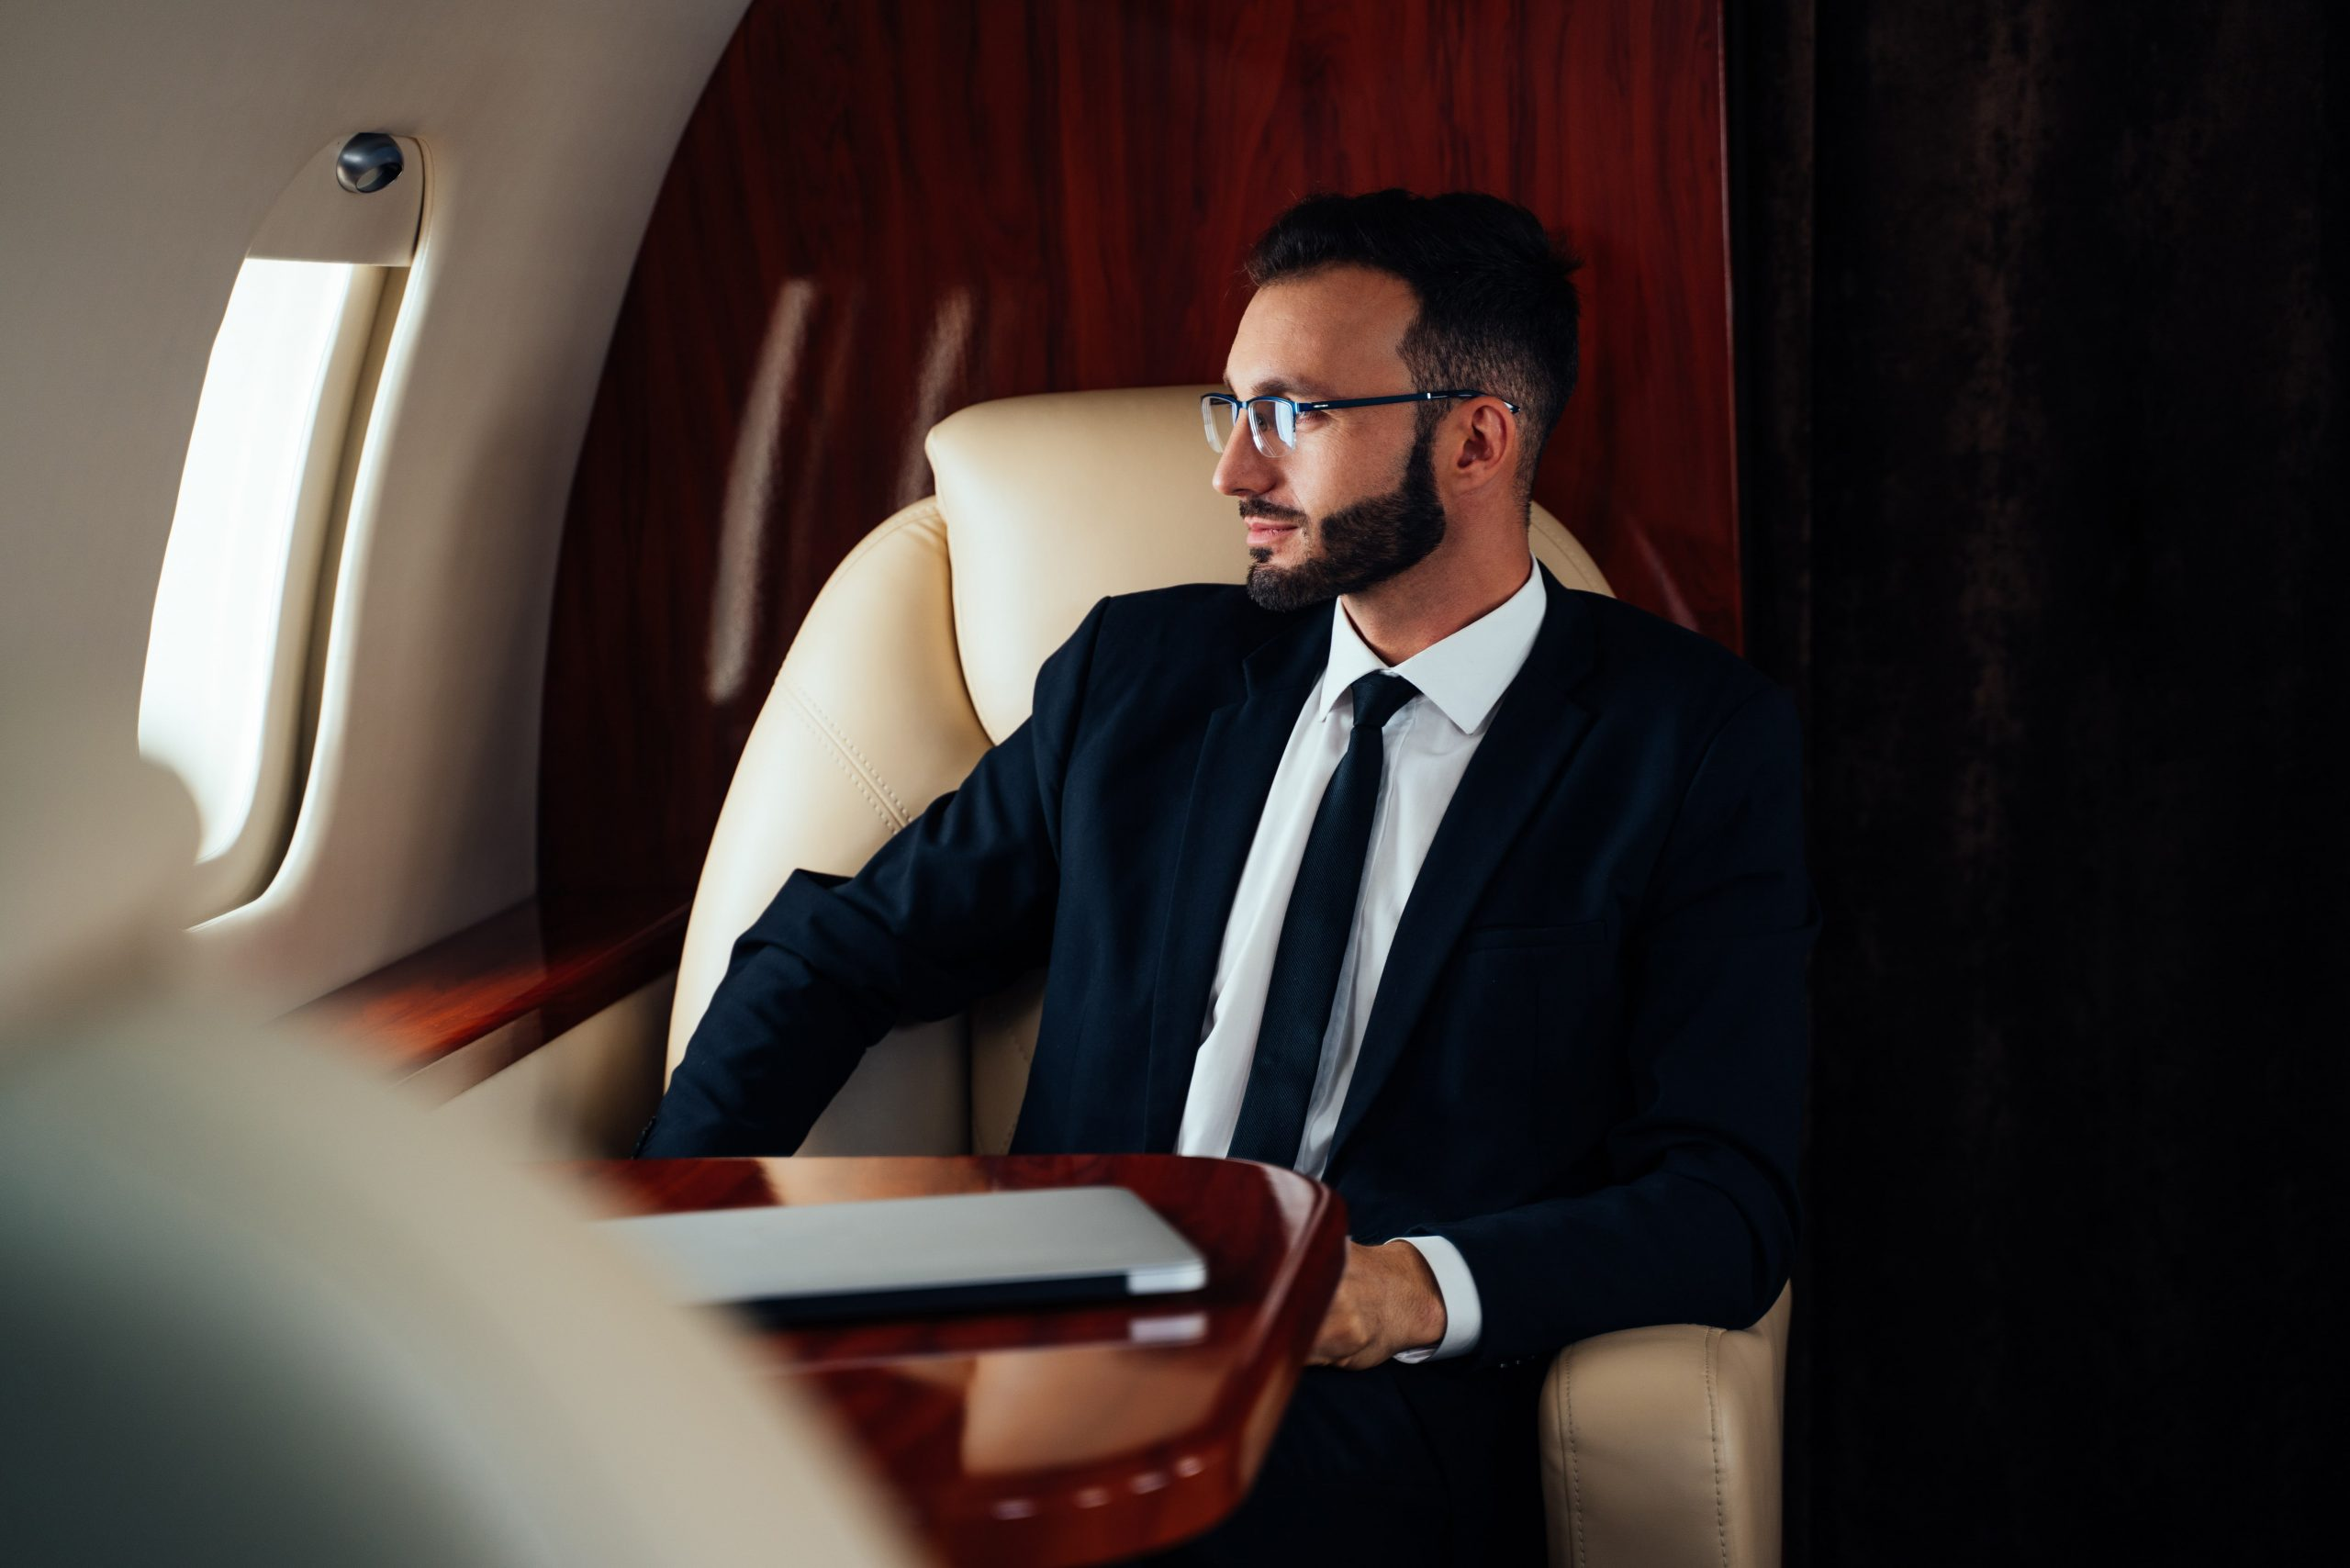 business-man-flying-on-private-jet-N3AUWJF